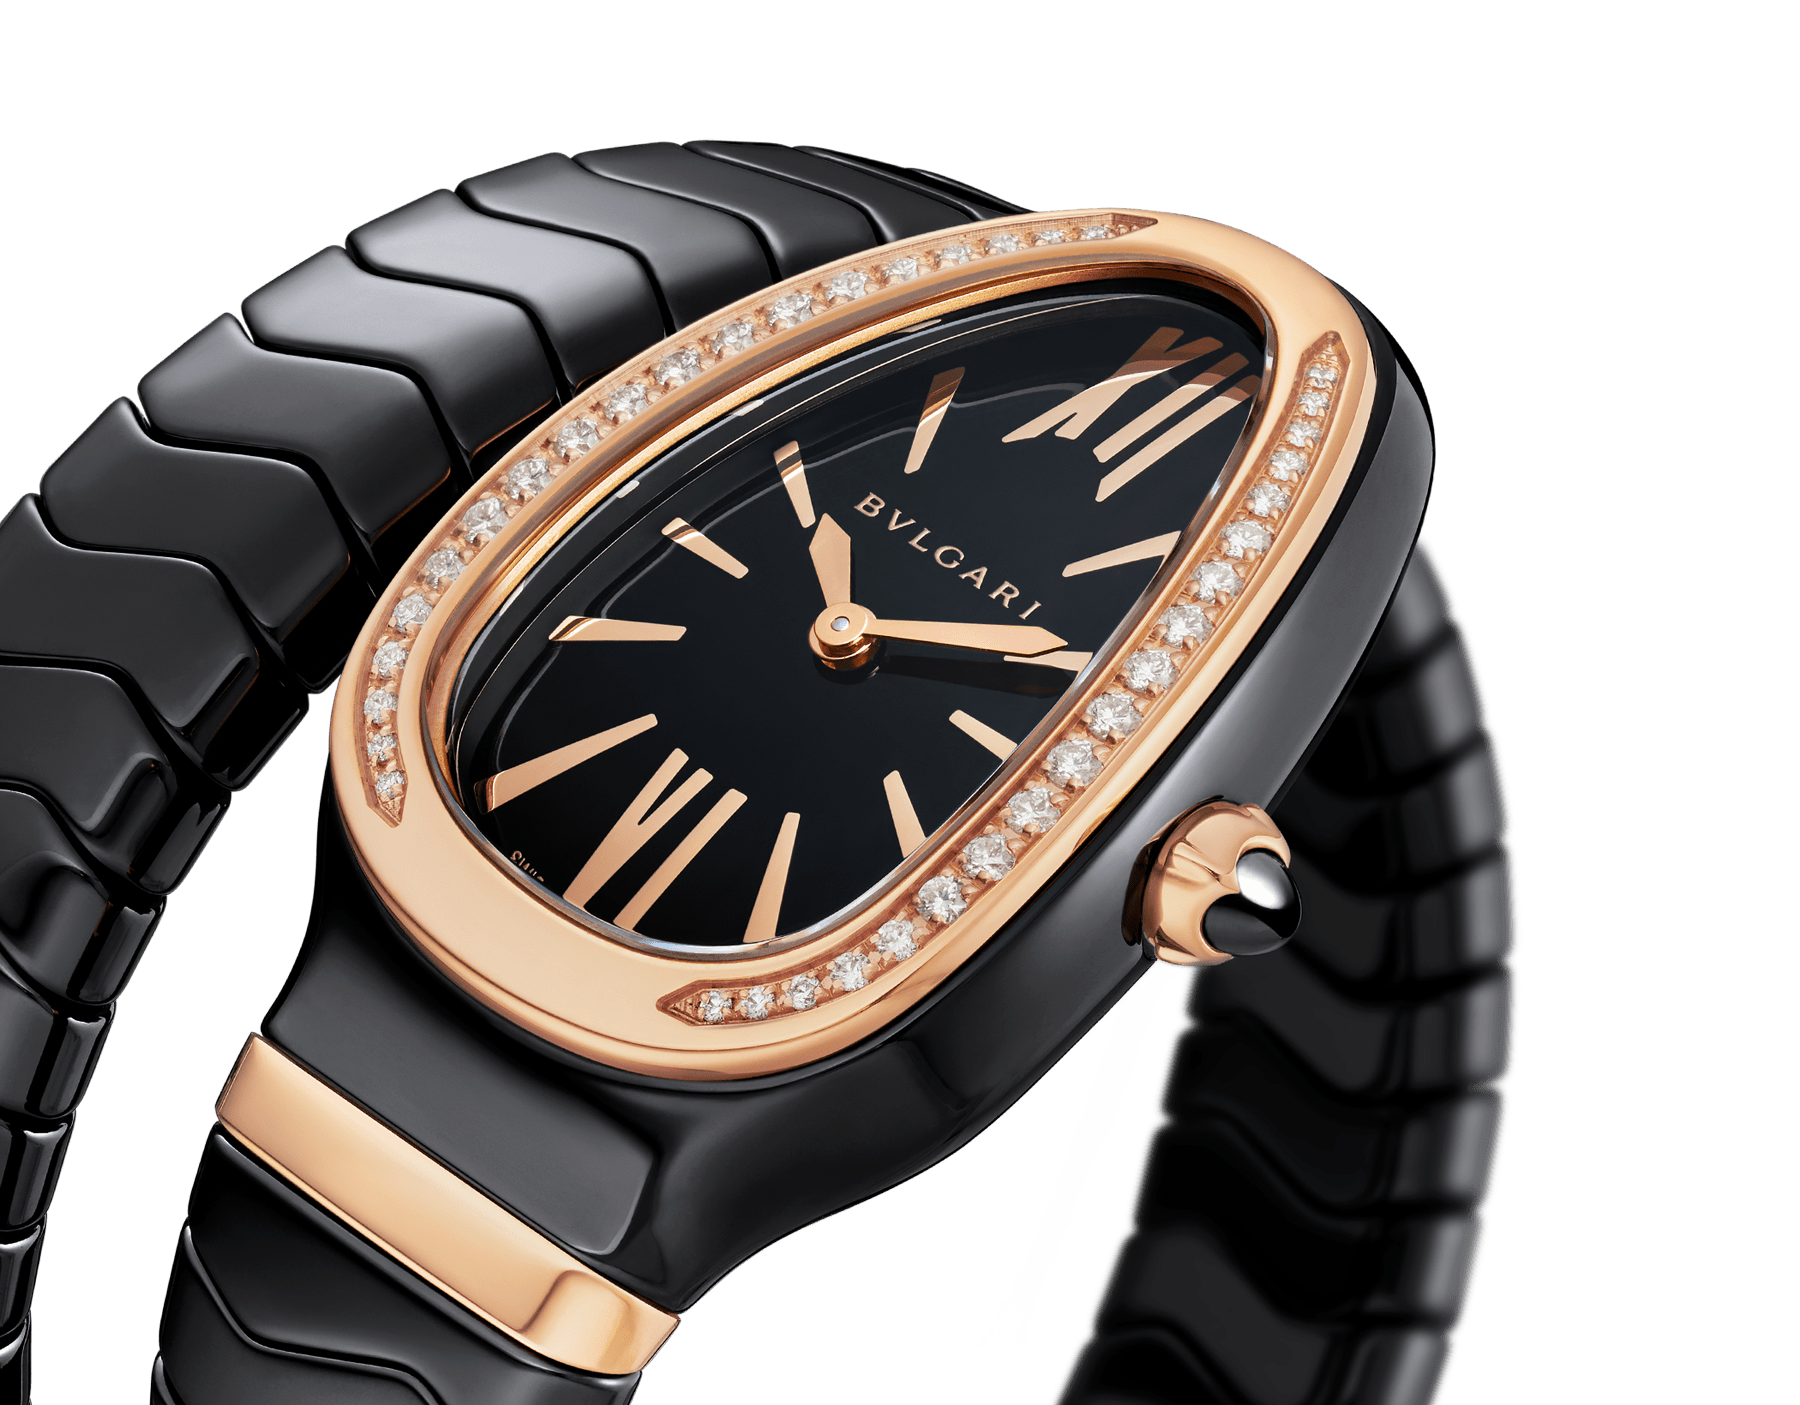 Serpenti Spiga single spiral watch with black ceramic case, 18 kt rose gold bezel set with brilliant cut diamonds, black lacquered dial, black ceramic bracelet with 18 kt rose gold elements. 102532 image 3